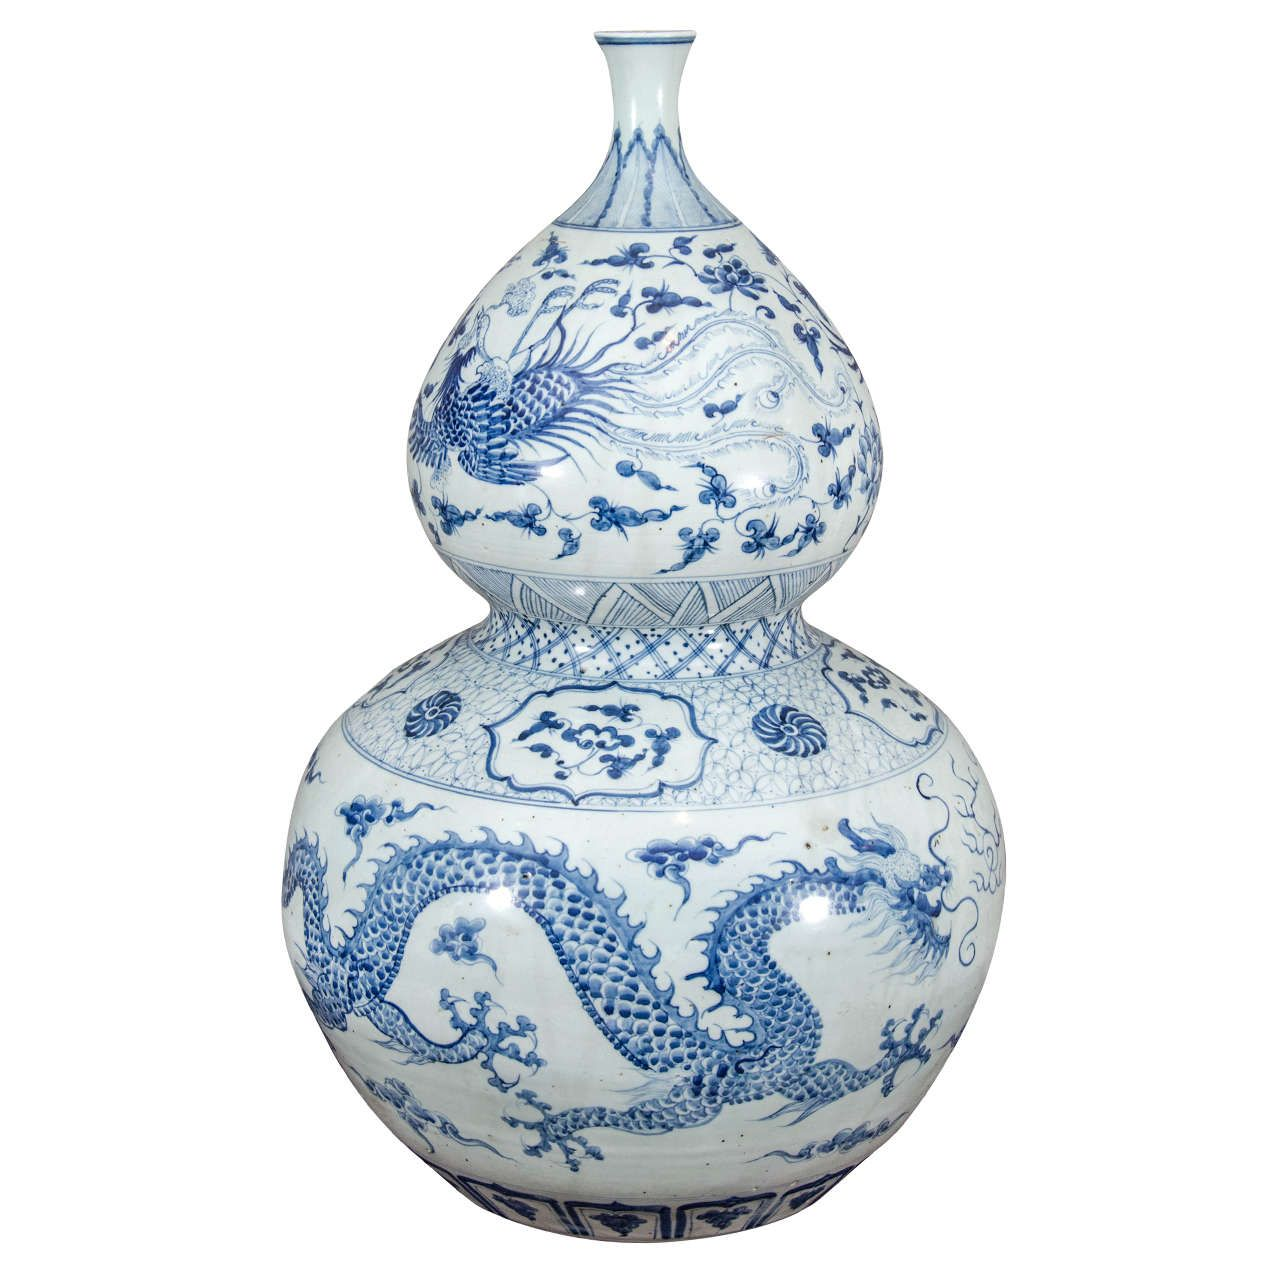 Large chinese blue and white porcelain double gourd calabash vase large blue and white double gourd vase from a unique collection of antique and modern reviewsmspy